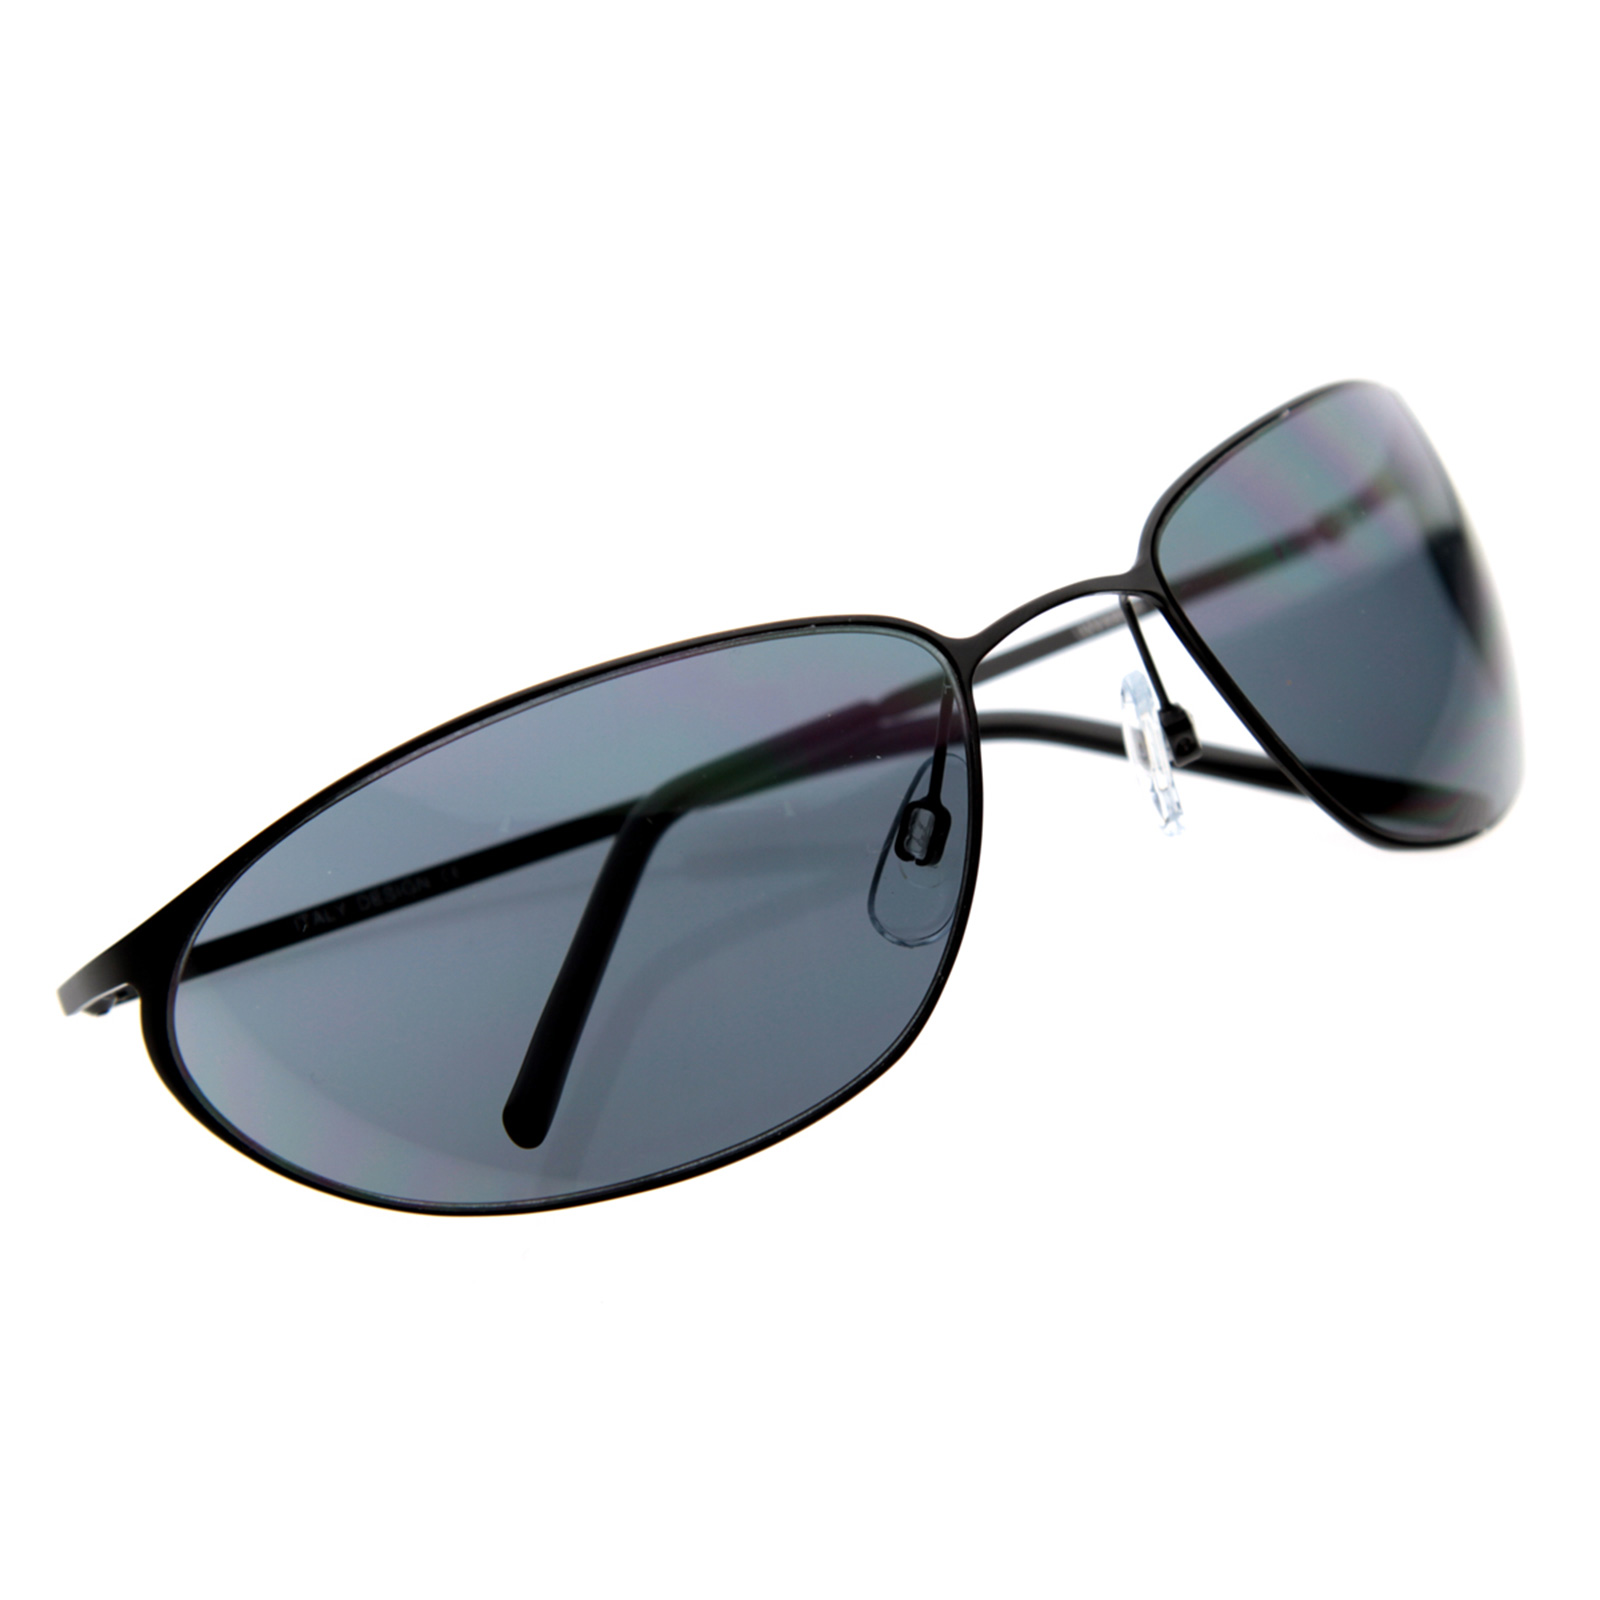 Wire Frame Glasses In Style : Matrix NEO High Quality Metal Wire Frame Glasses Movie ...